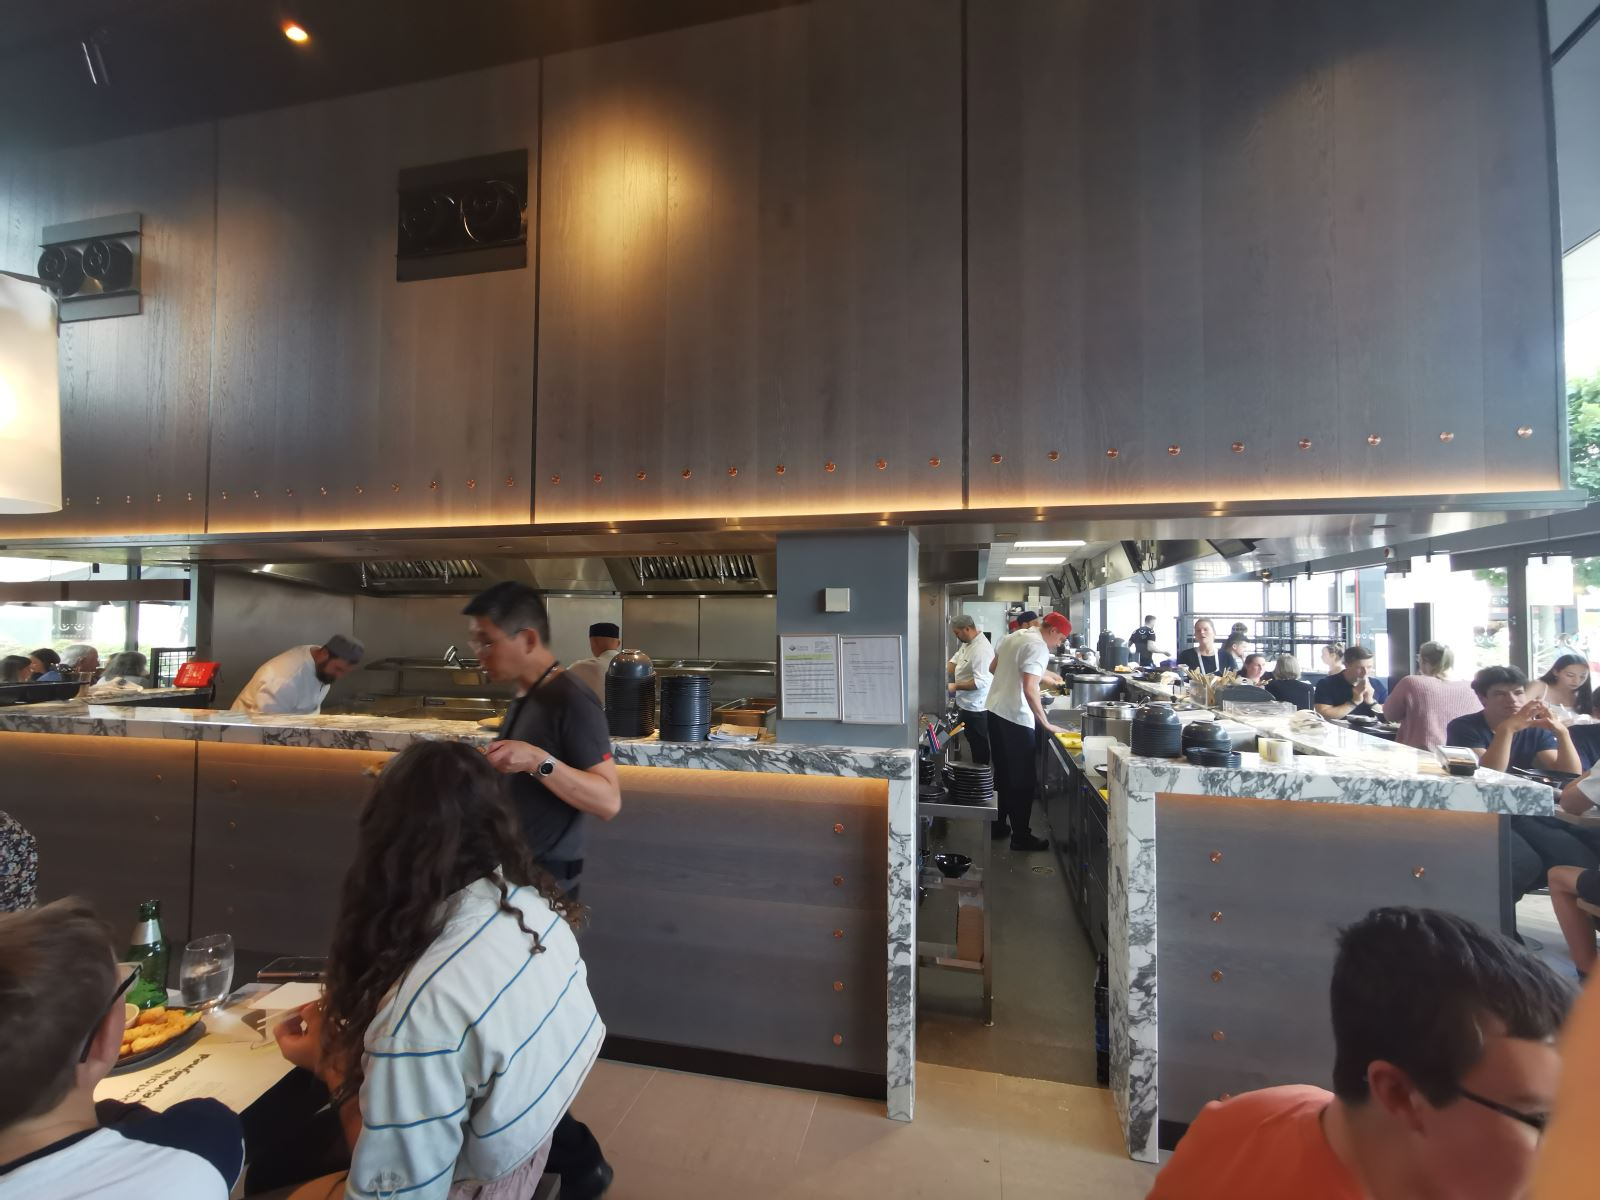 Open kitchen at wagamama